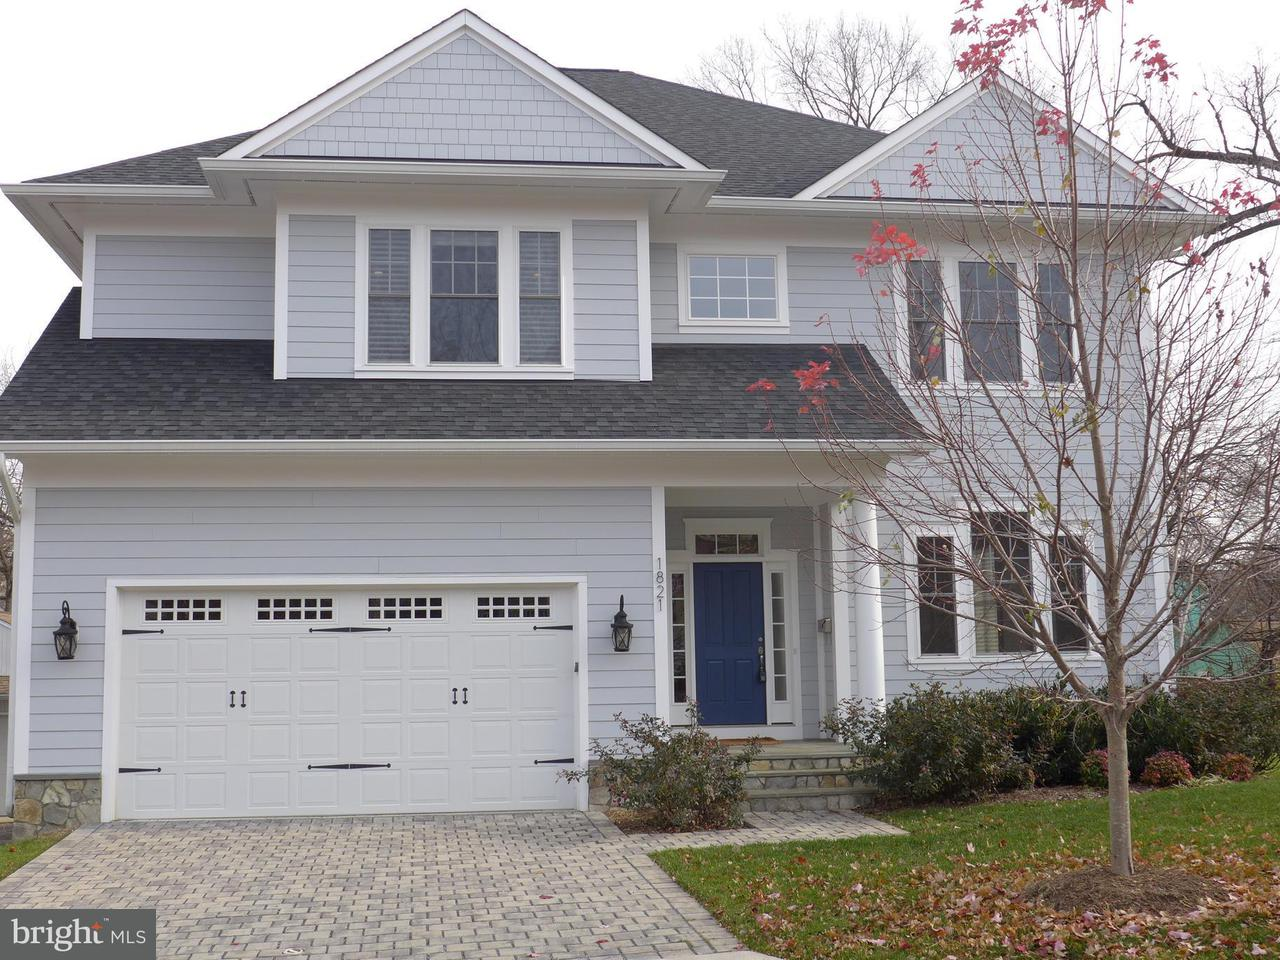 Single Family Home for Sale at 1821 OAKLAND ST N 1821 OAKLAND ST N Arlington, Virginia 22207 United States